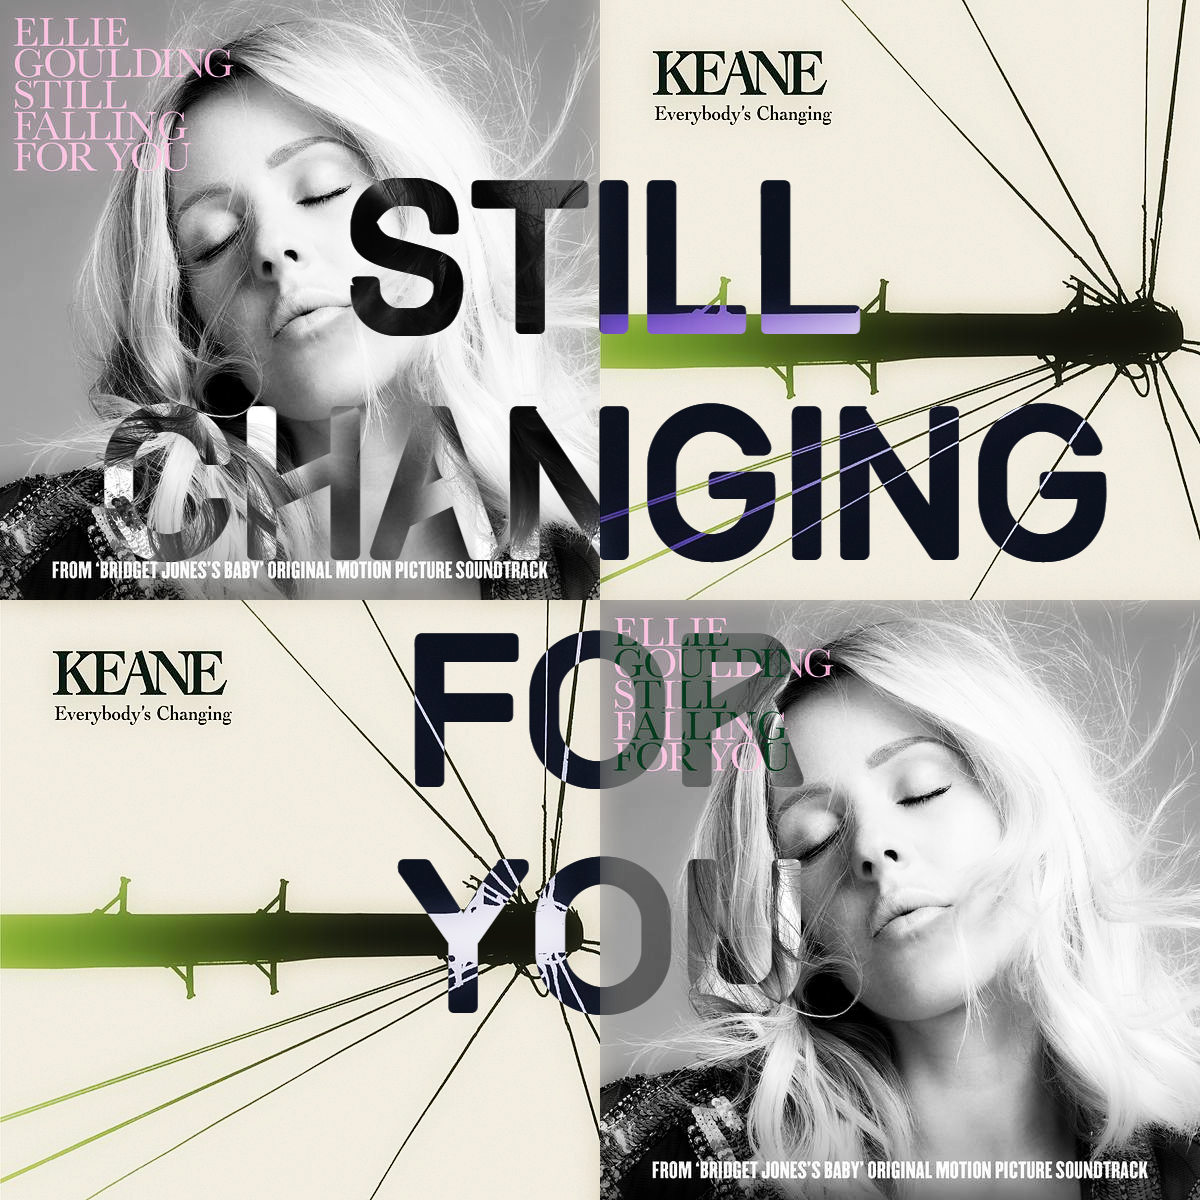 Ellie Goulding vs. Keane - Still Changing For You (SimGiant Mash Up)